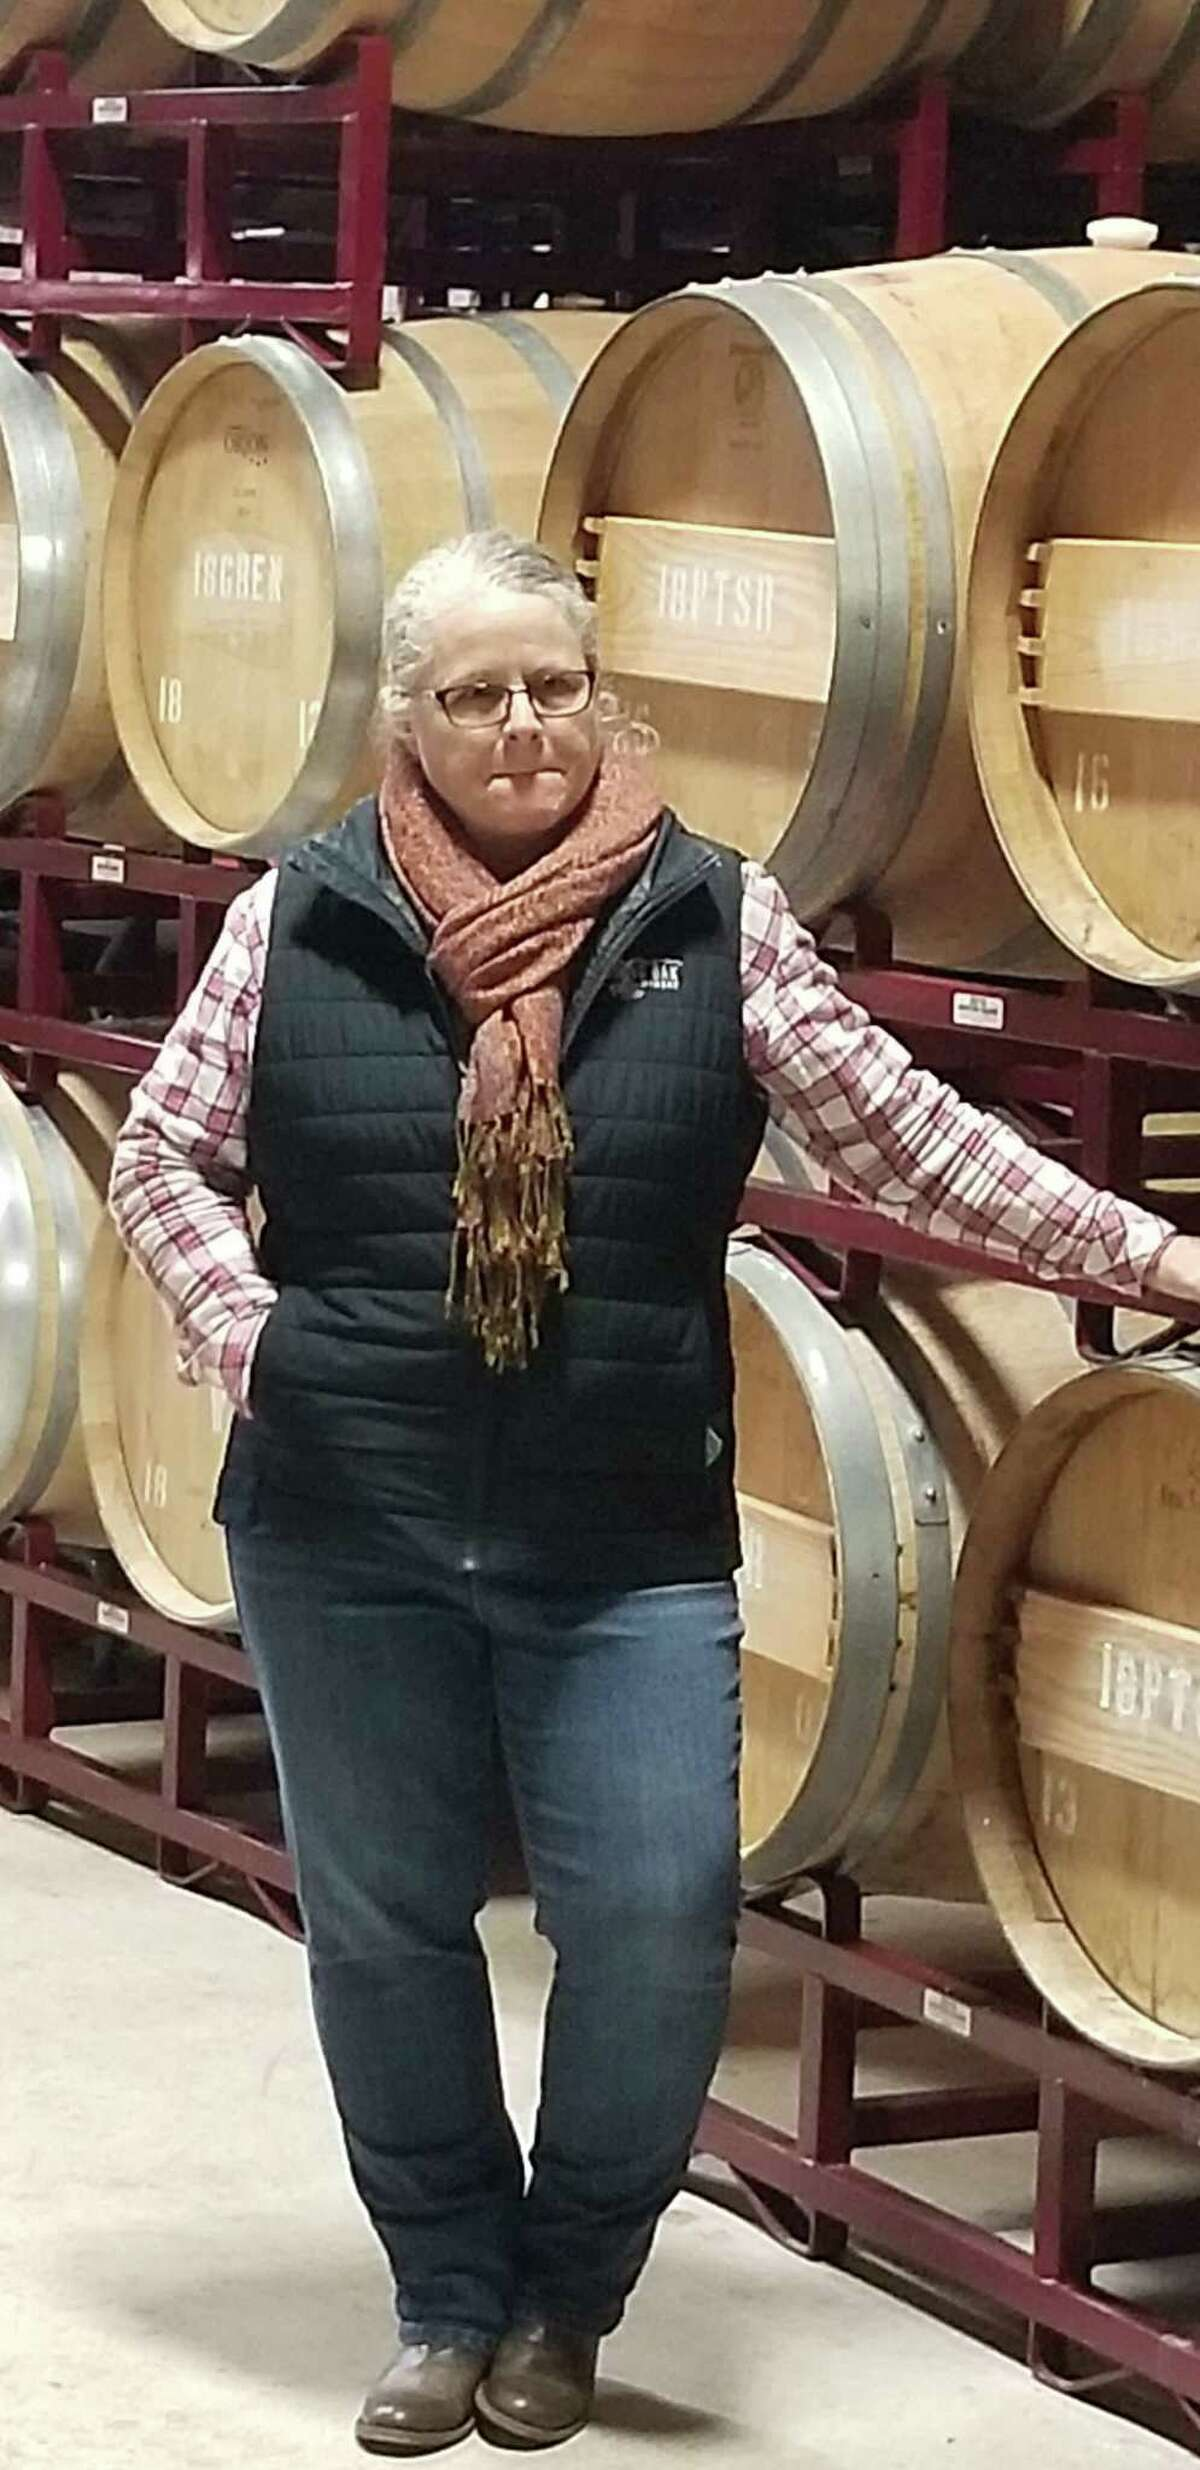 Penny Adams proudly stands besides racks of barrels of wines she has handcrafted from vineyards she planted and tends to. She knows her vines and wines.